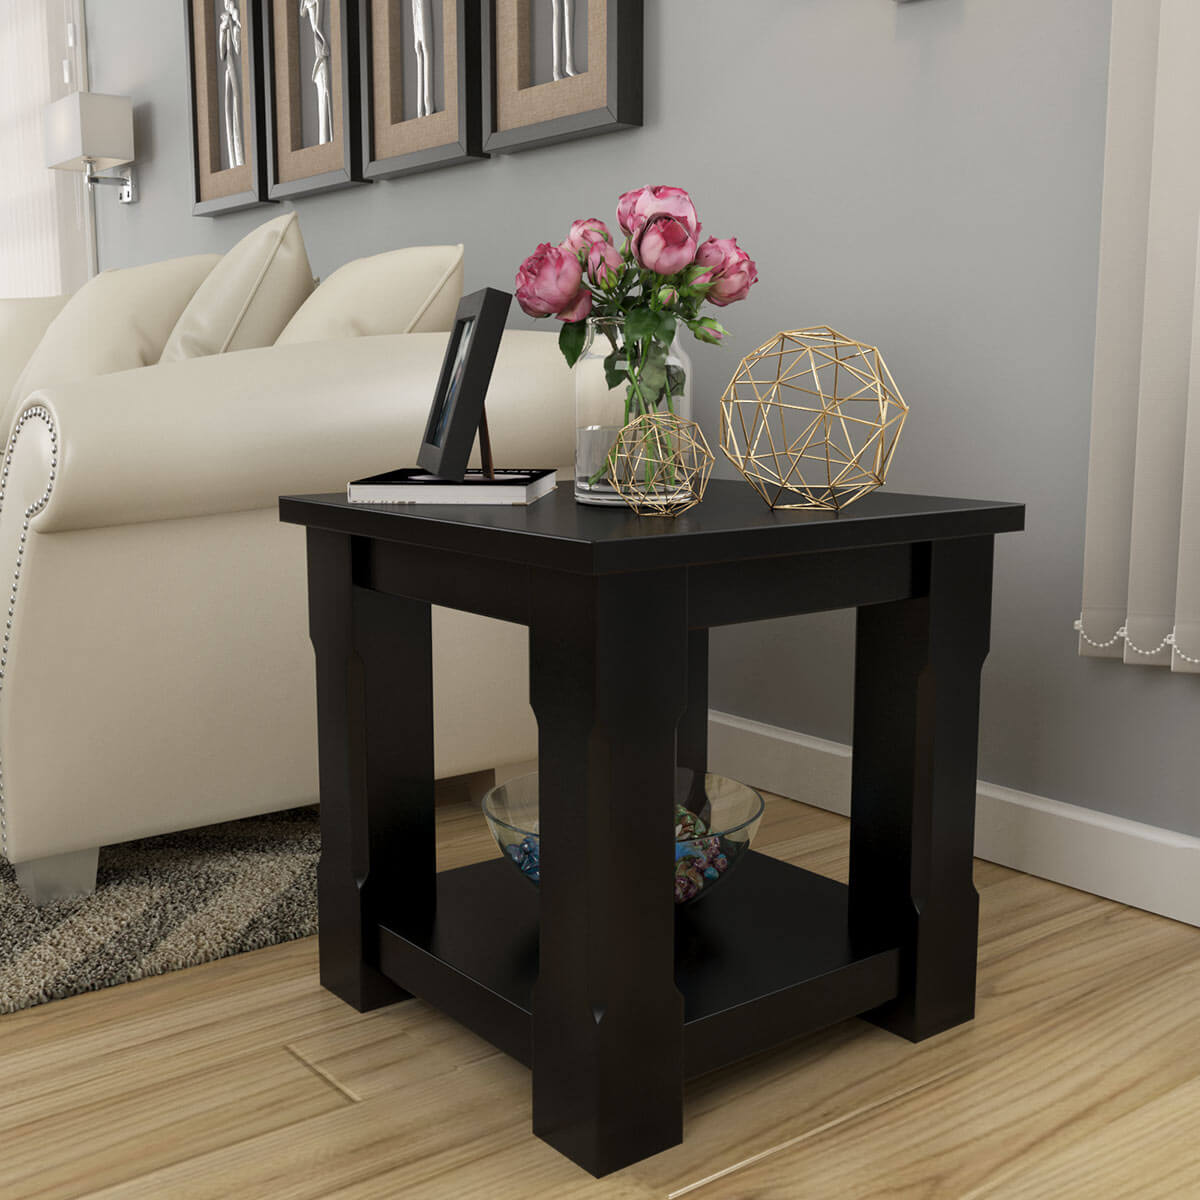 Brimson Contemporary Style Solid Wood 2 Tier Square End Table